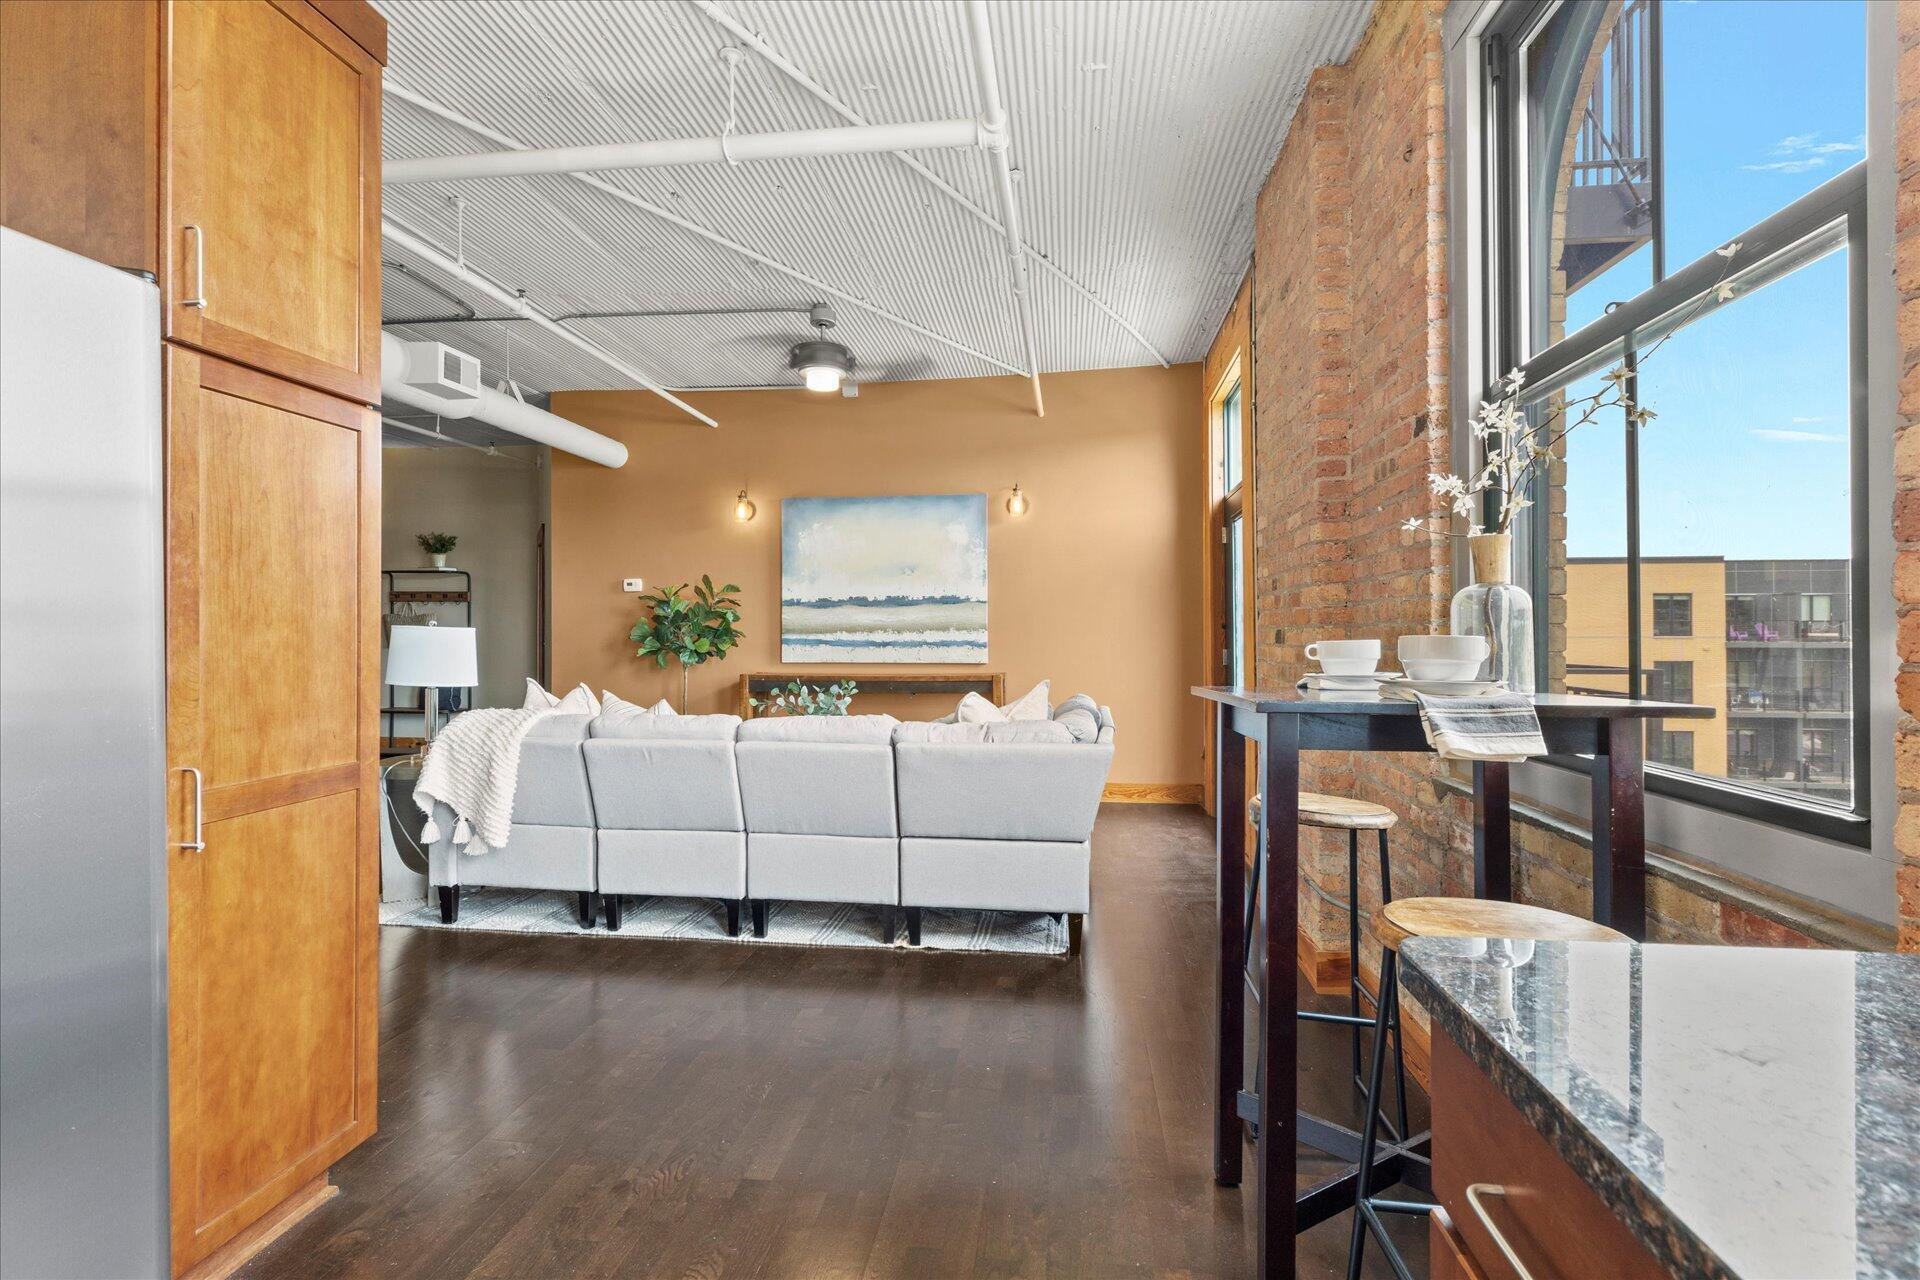 Kitchen flows into living room